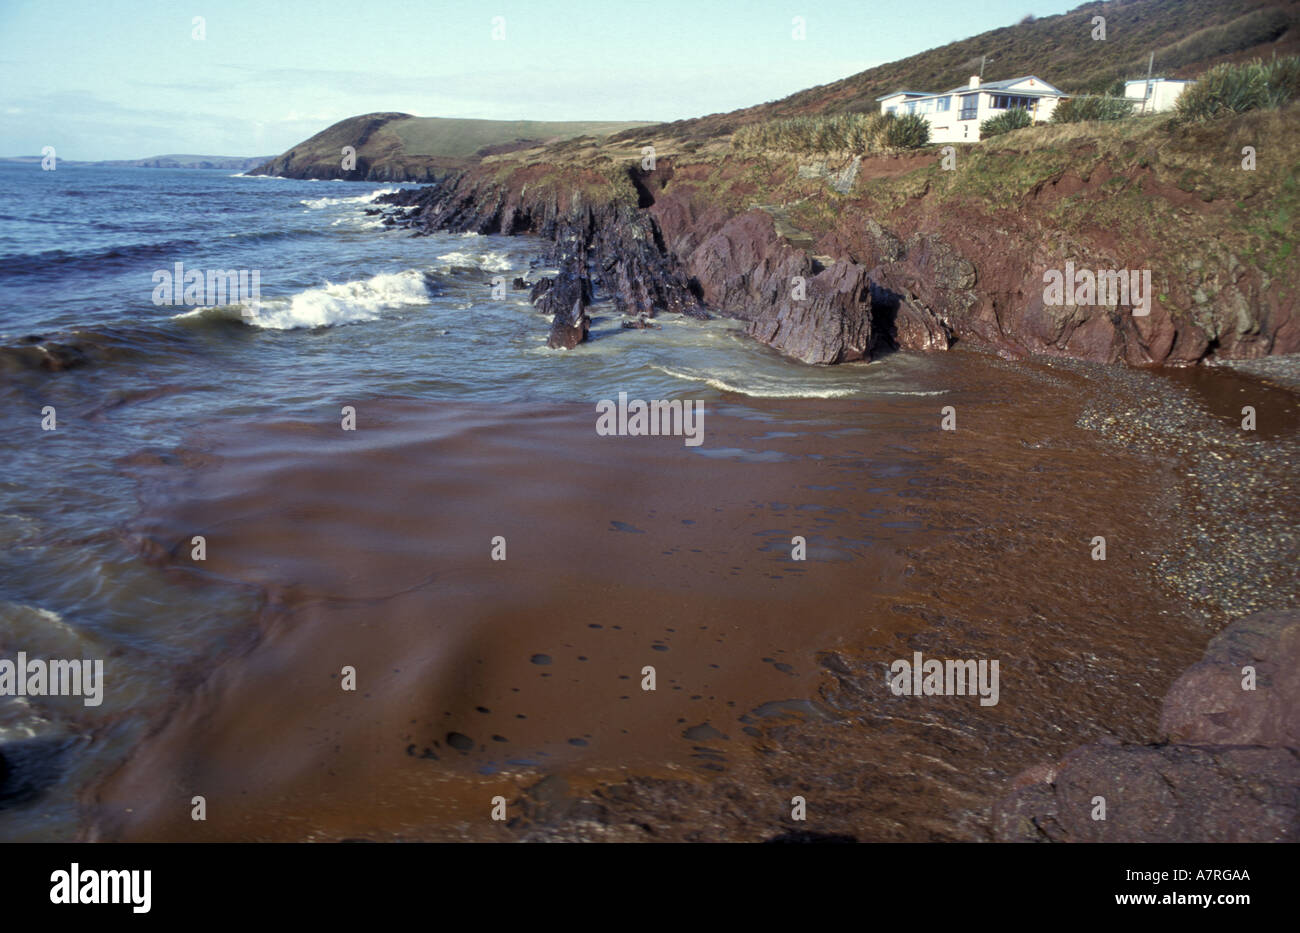 Oil coming ashore near Manobier beach in south Wales after Sea Empress oil spill Stock Photo